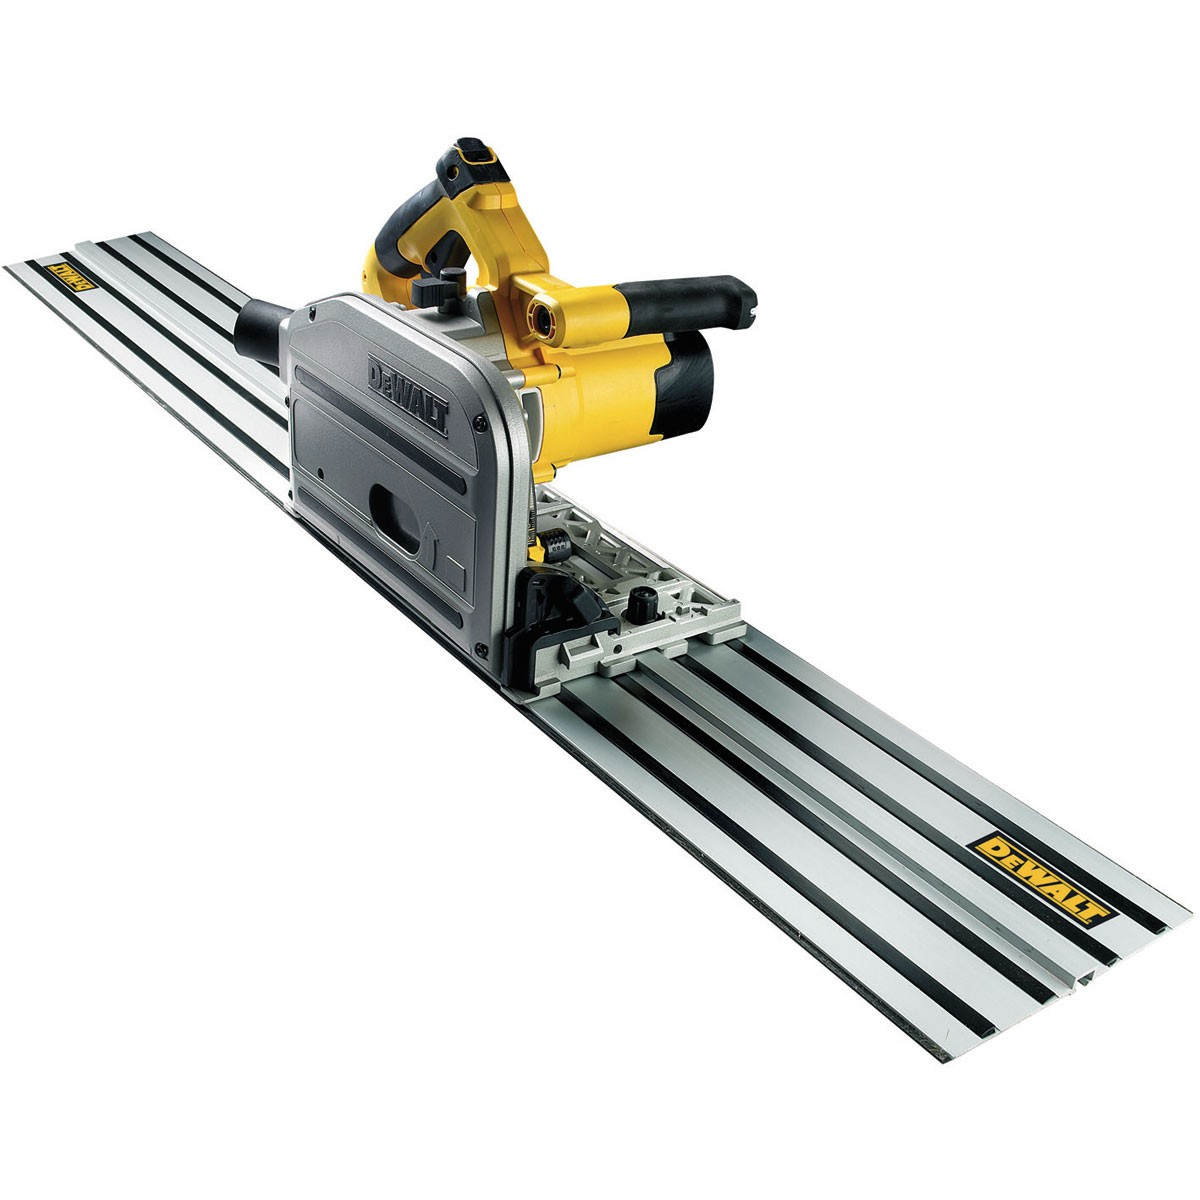 DeWalt DWS520KTR Plunge Saw & Guide Rail in TSTAK 240v